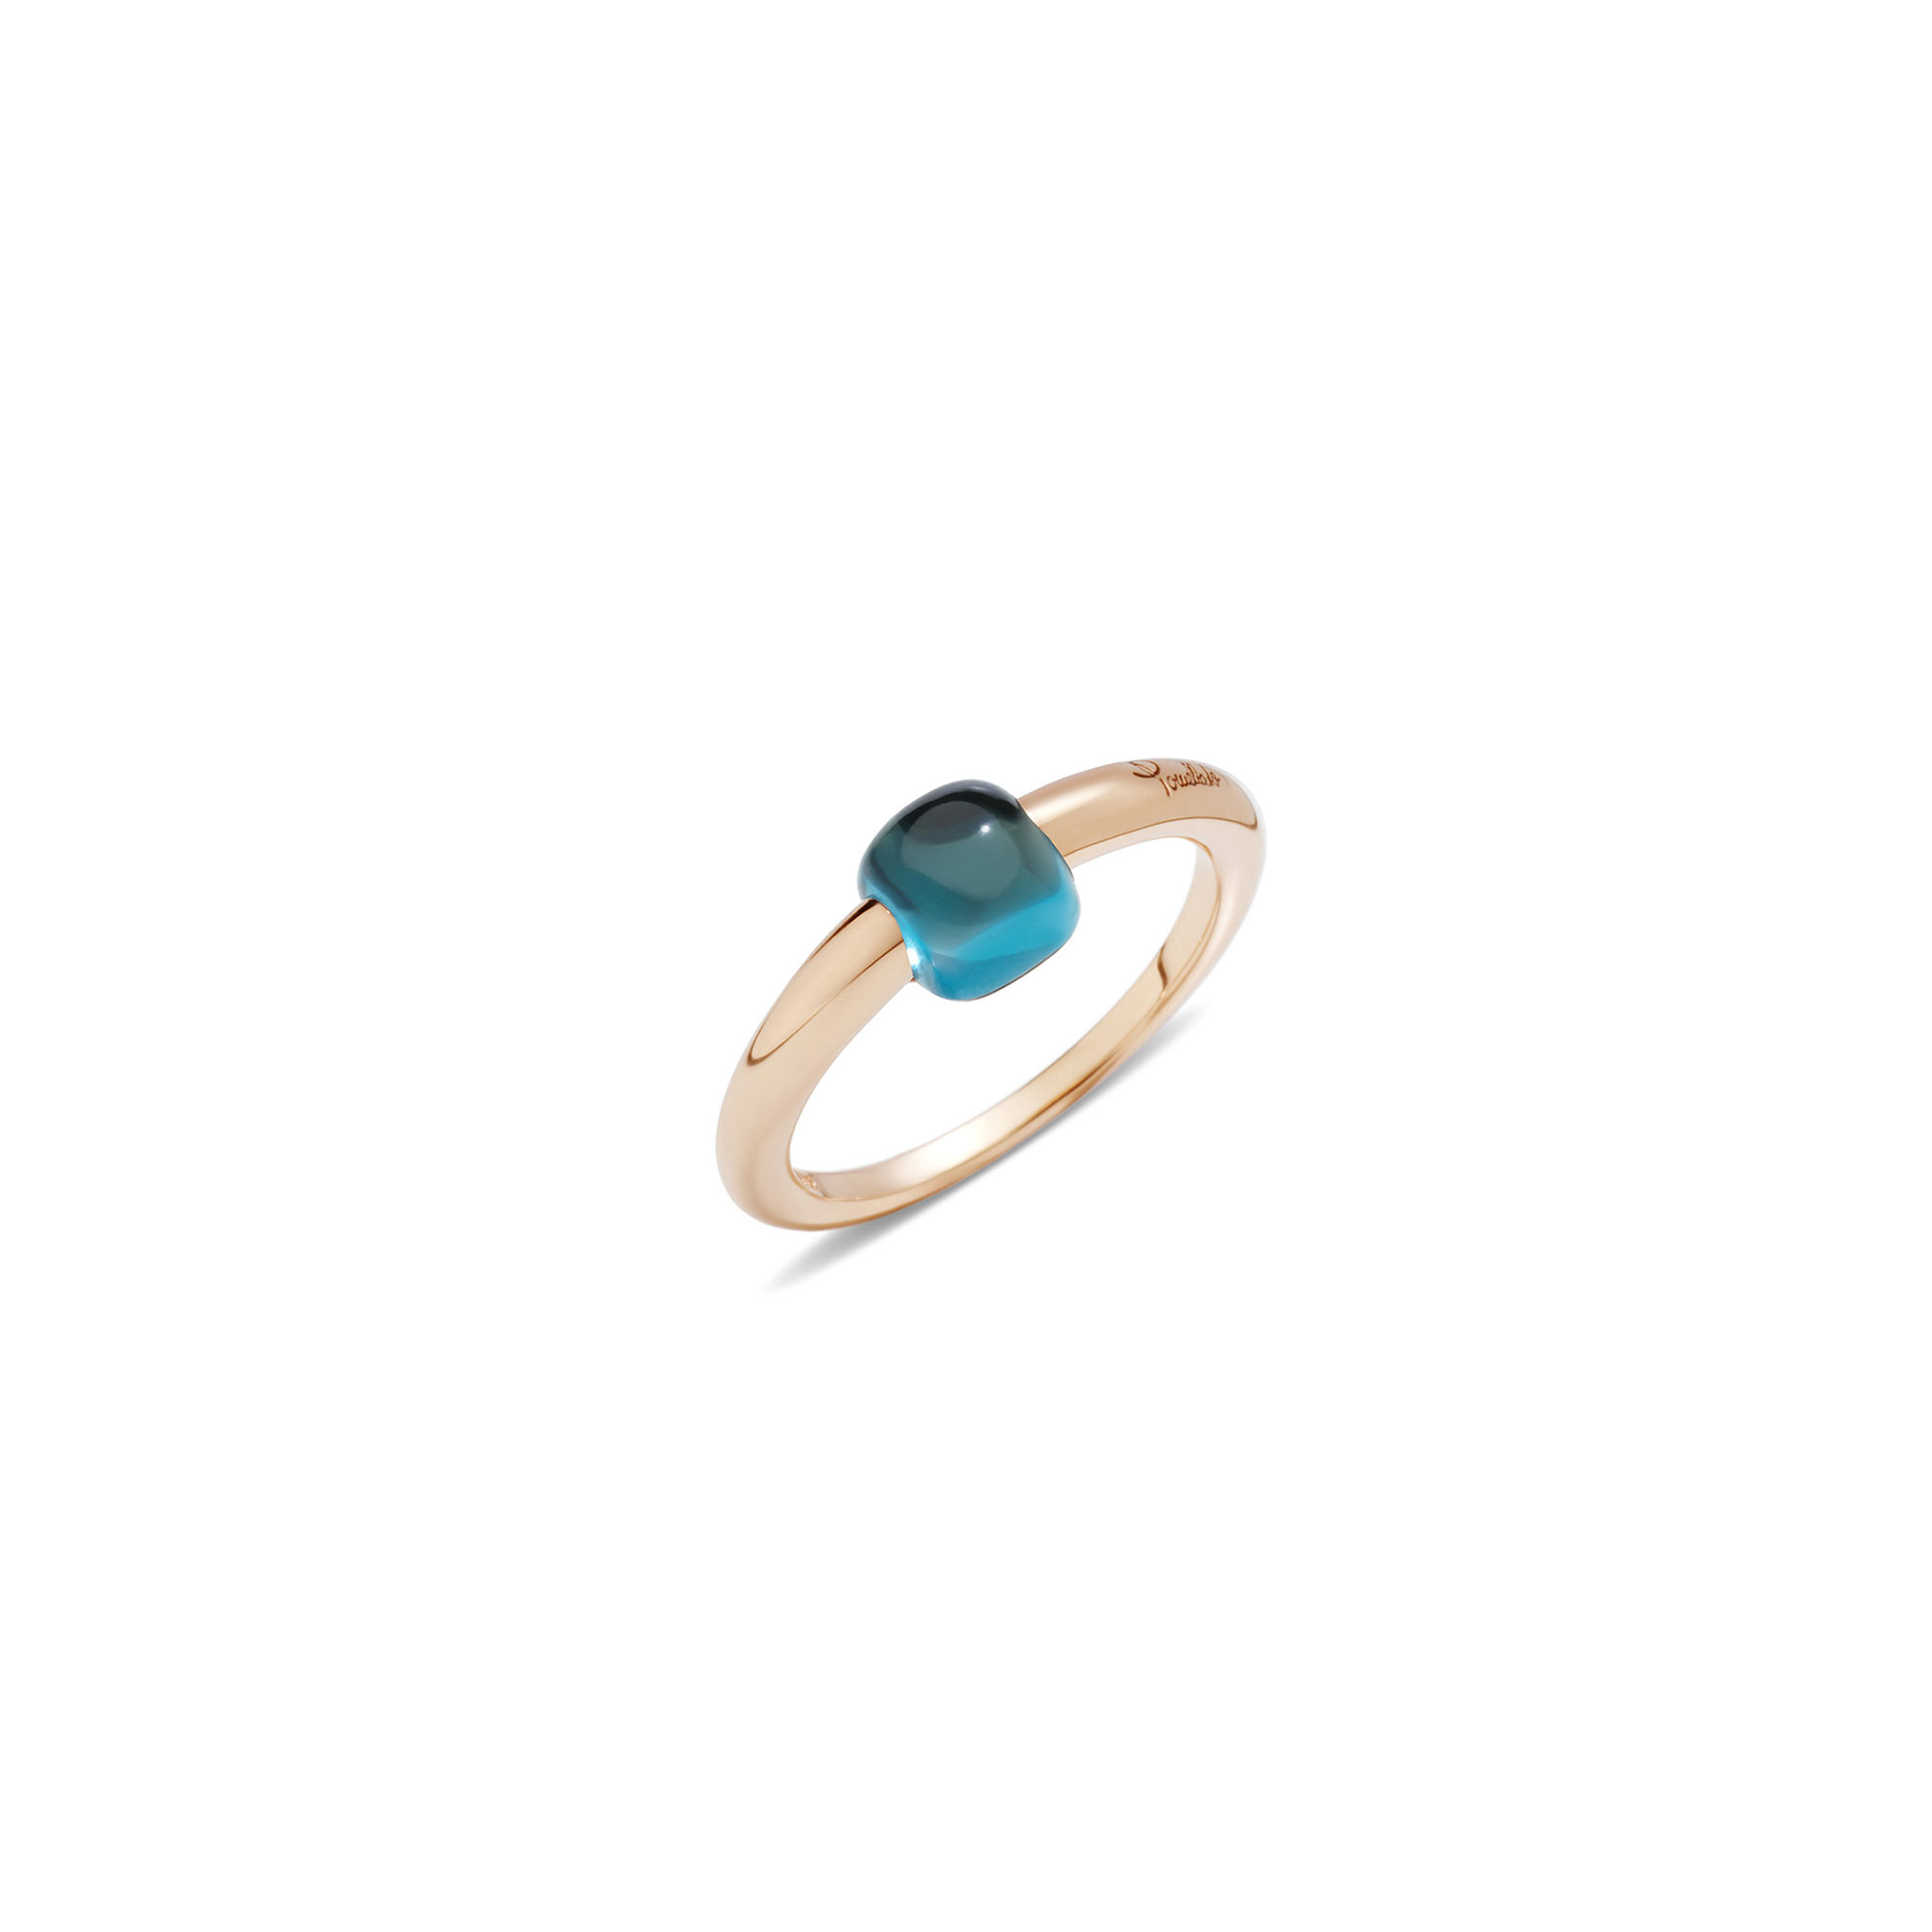 M'AMA NON M'AMA RING BLUE LONDON TOPAZ